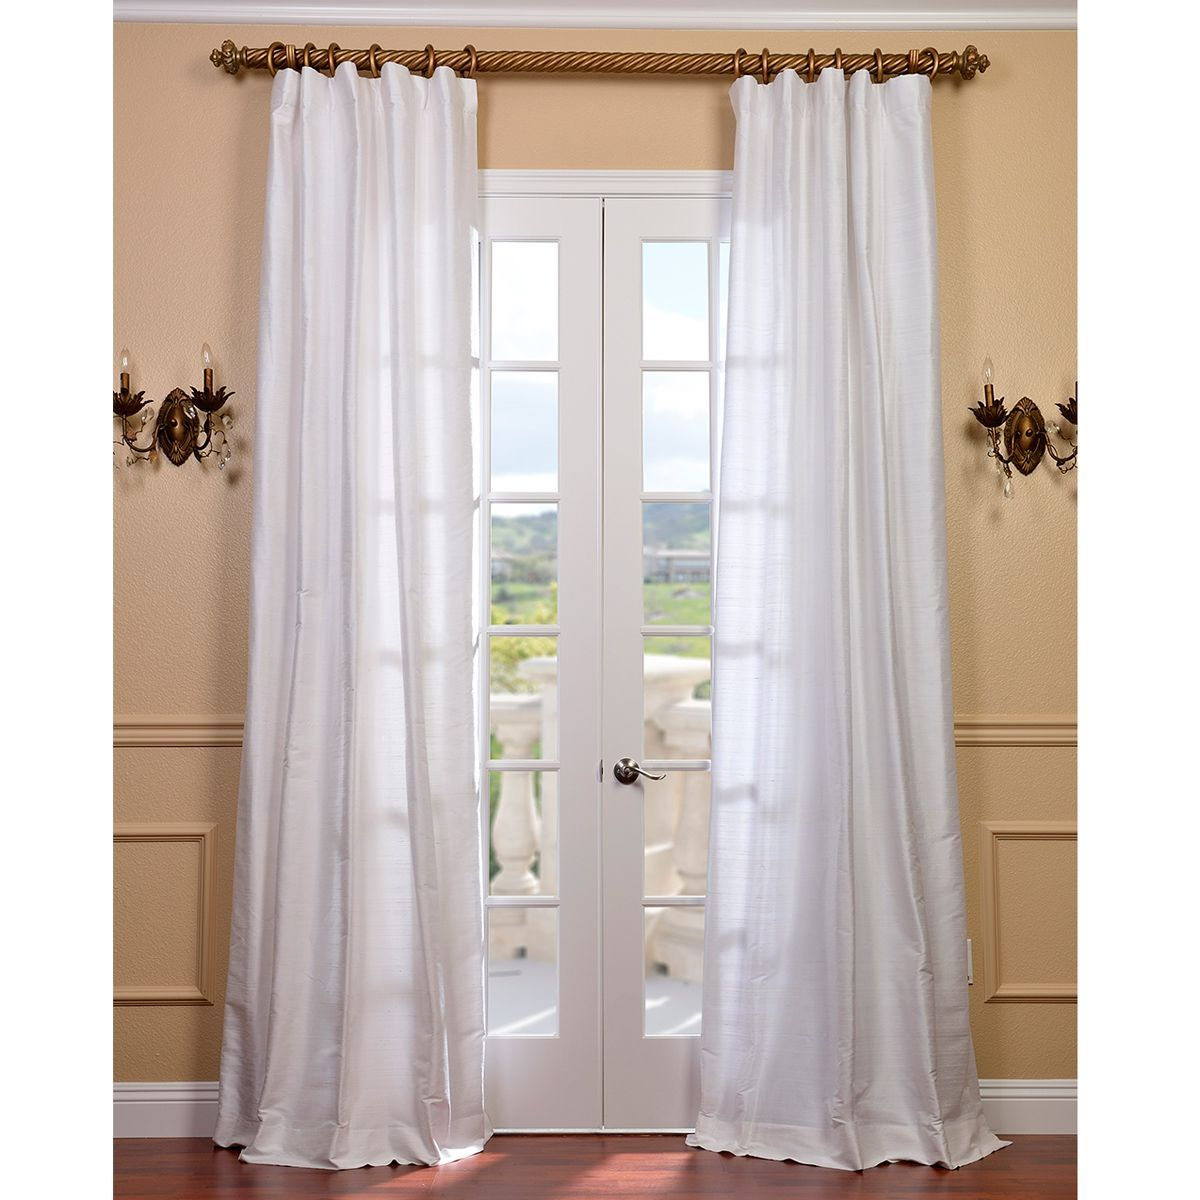 Exclusive Fabrics Signature Lily White Textured Silk Curtain Pertaining To Ice White Vintage Faux Textured Silk Curtain Panels (View 12 of 20)